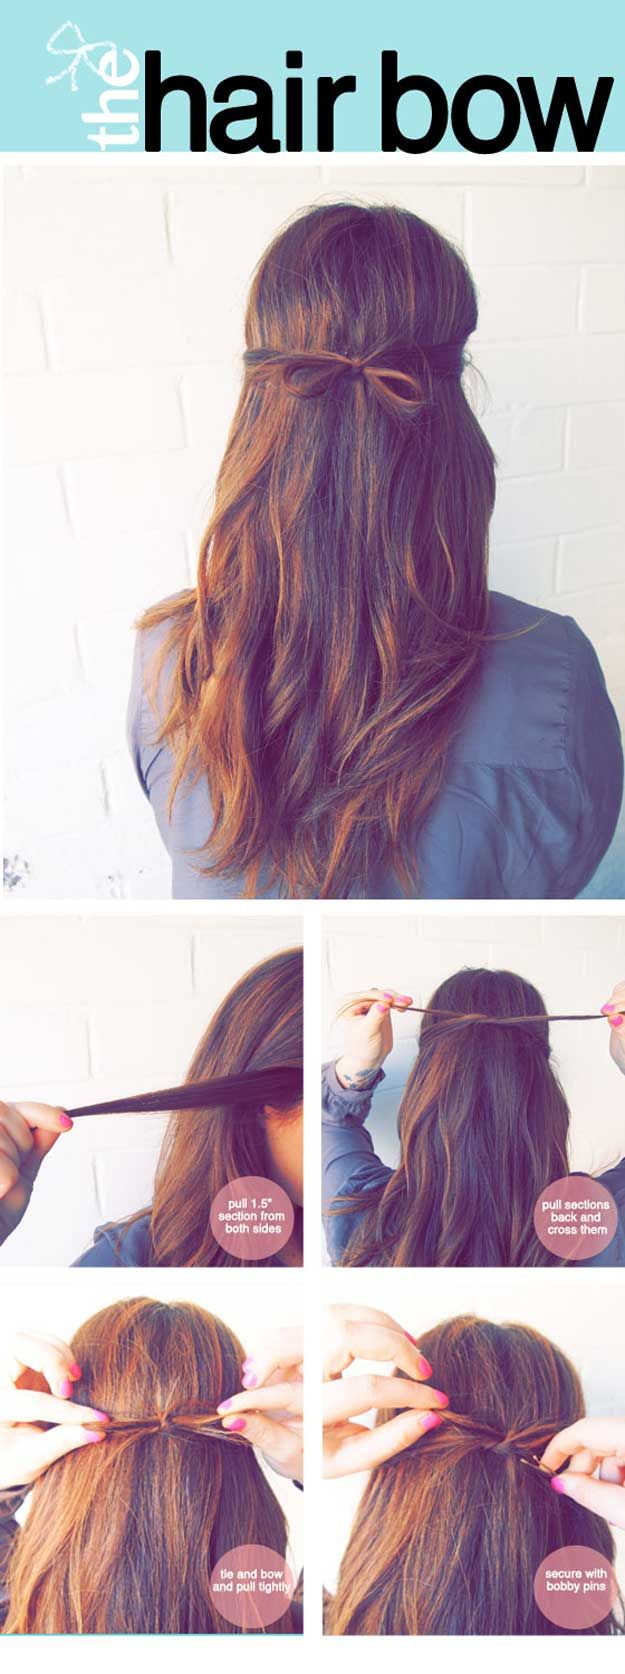 Best 5 Minute Hairstyles - The Hair Bow - Quick And Easy Hairstyles and Haircuts For Long Hair, That Are Super Simple and Great For Busy Mornings Or For School. Braids, Undo's, Ponytail Looks And Hair Styles For Short Hair, Medium Length Hair, And Long Hair. Step By Step Tutorials, Tips, And Hacks For Teens, For Kids, And For Wet And Dry Hair. Great Looks For Curls, Simple And Cute Braids With Half Up Half Down Hairstyles. Five Minute Looks For Church, For Shoulder Length Hair, For Moms, And…